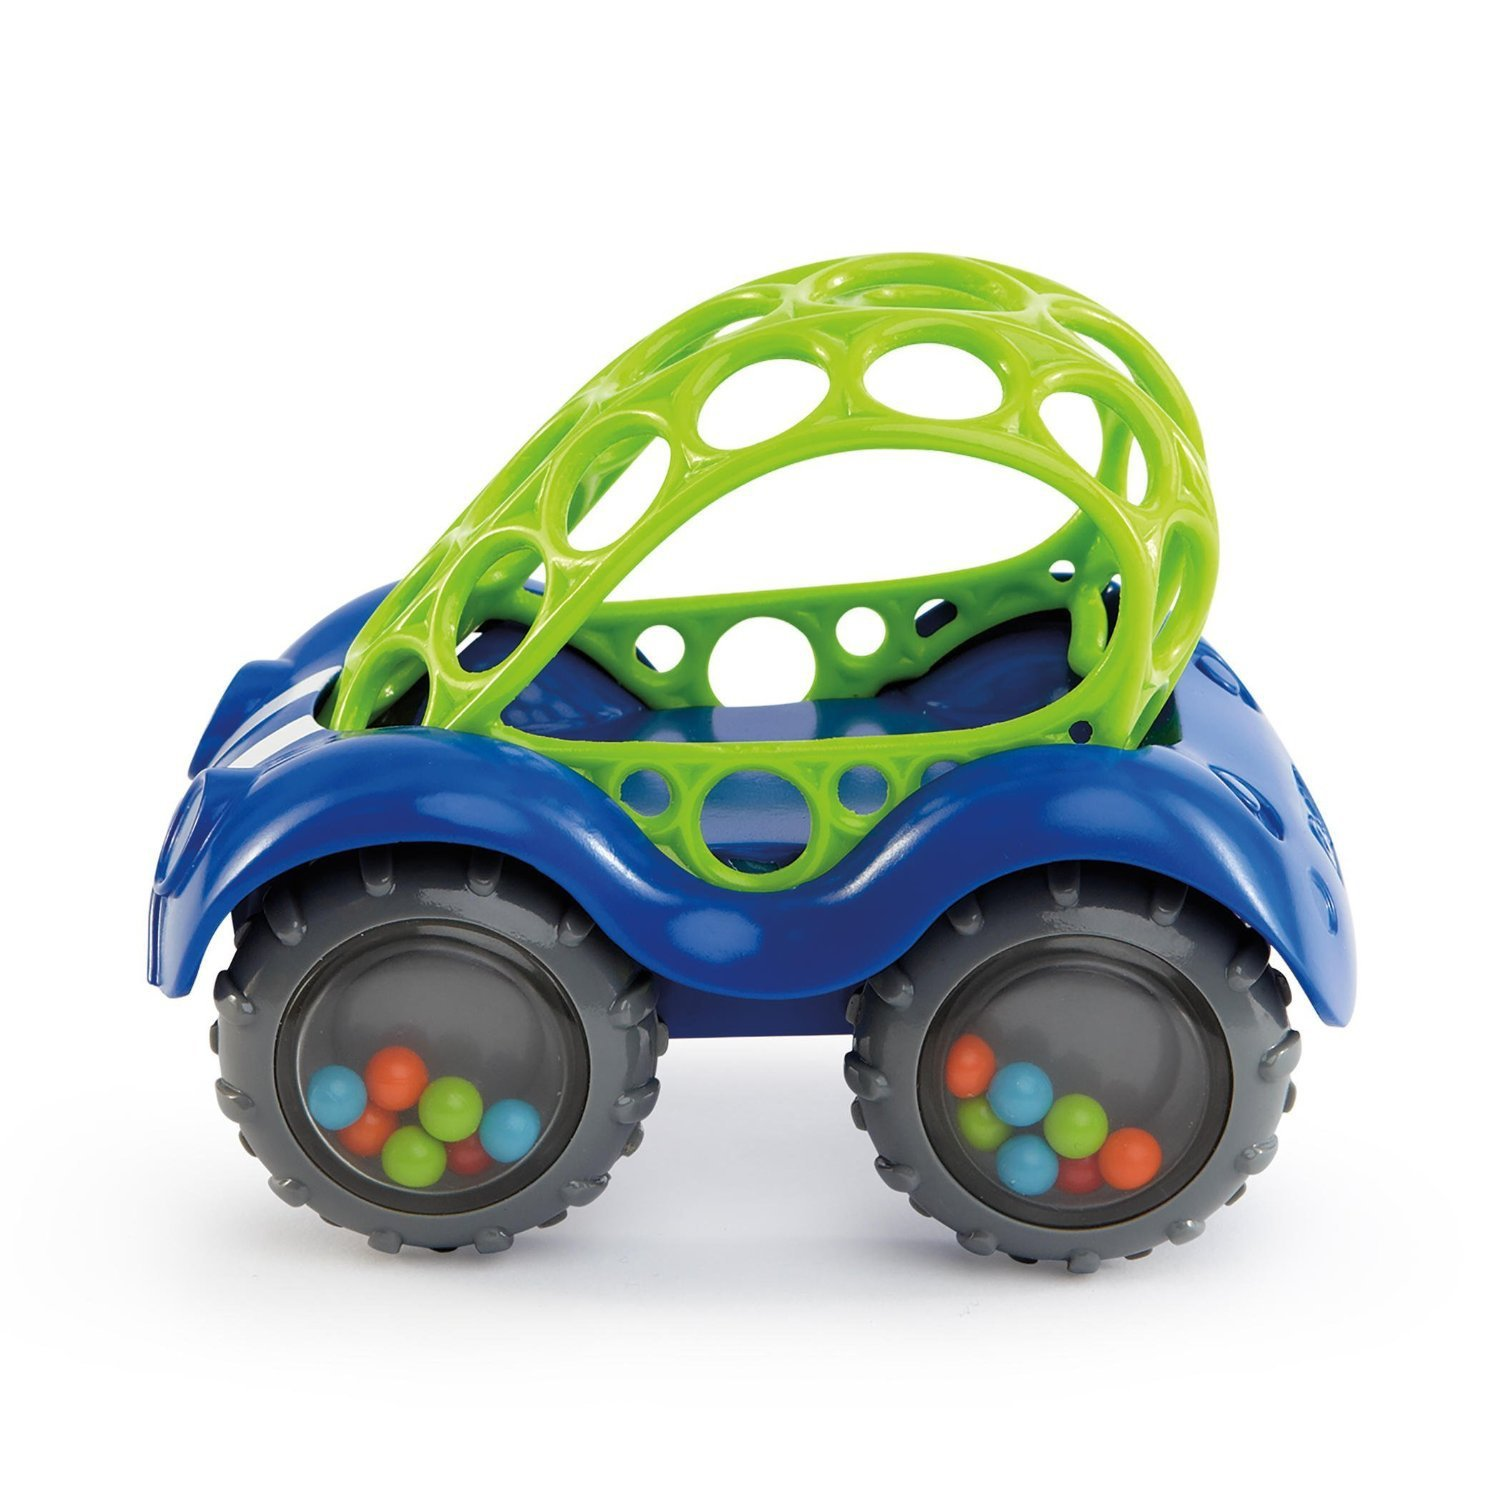 Best Baby Toys to Keep Kids Busy While Working at Home